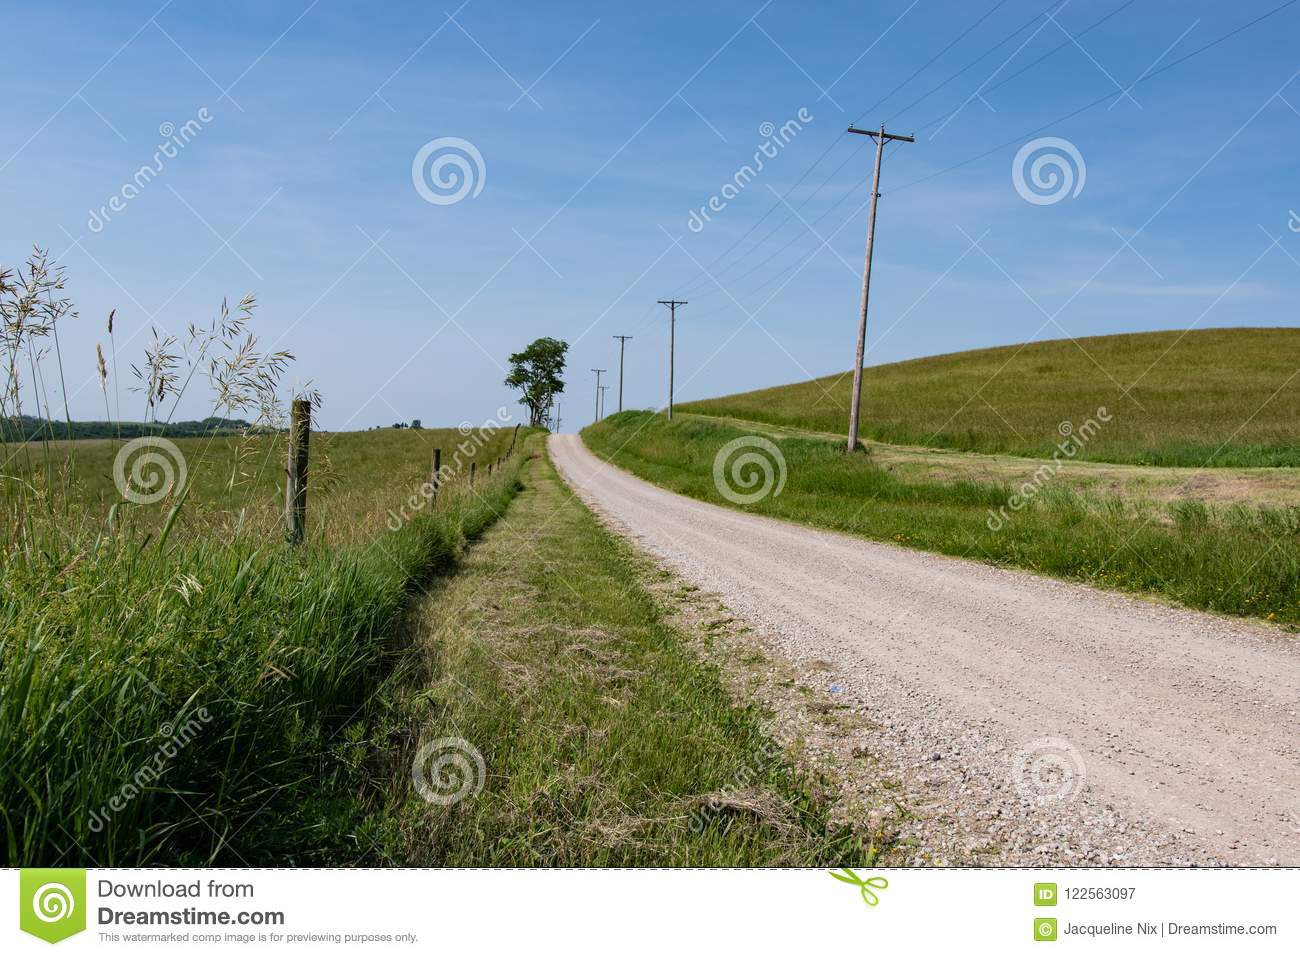 Rural country road background